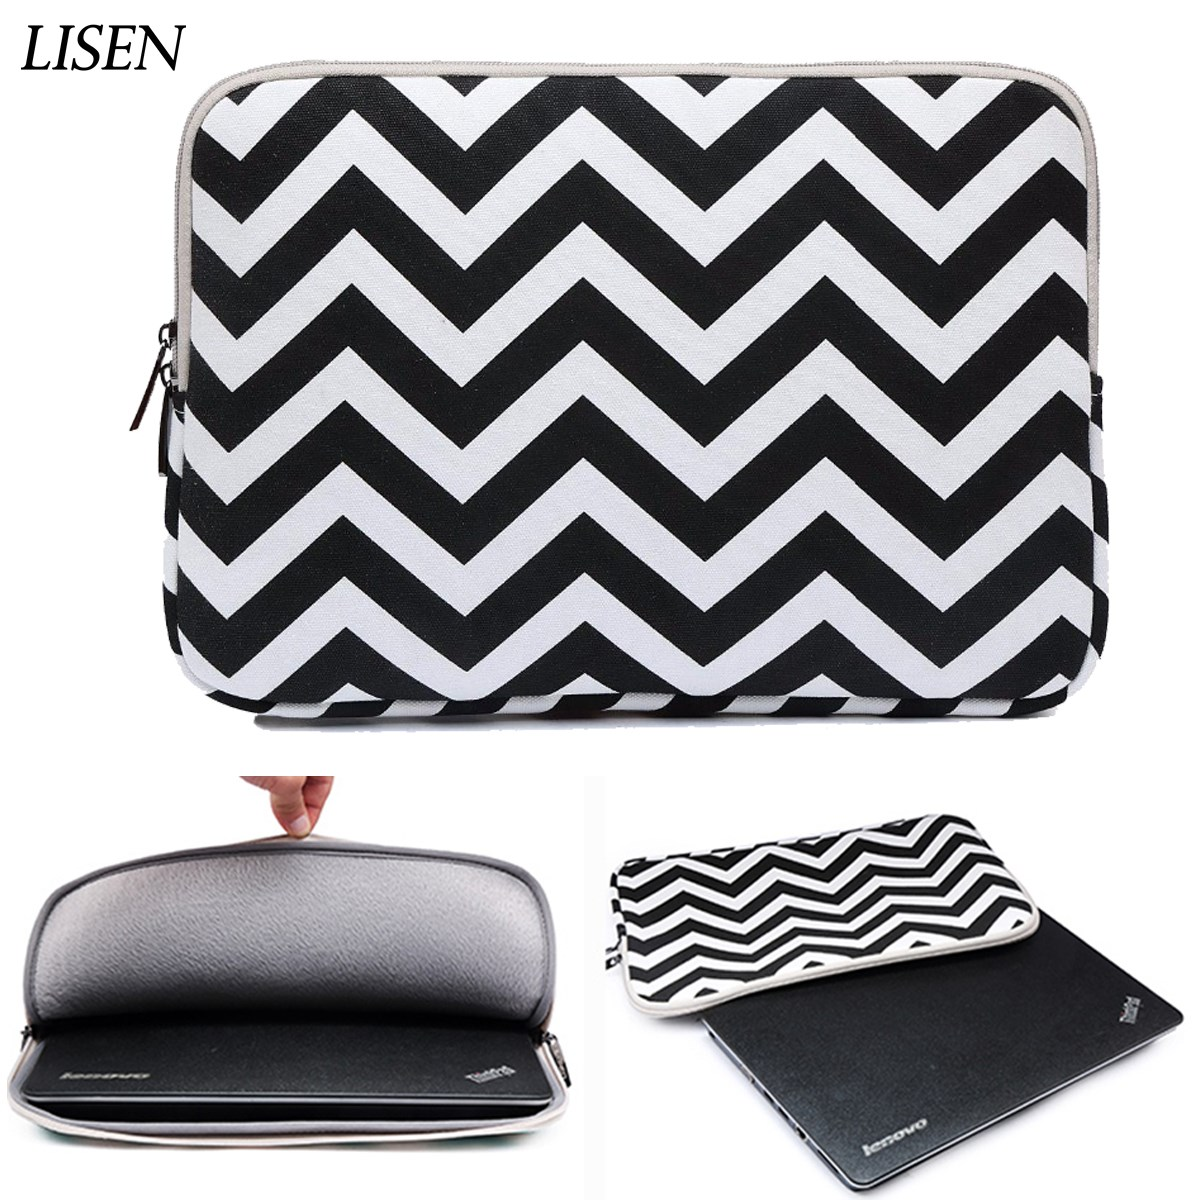 Laptop bag Sleeve Case For Macbook Air Pro Retina 11 11.6 12 13 13.3 15 15.4 for ipad mini 7.9 ipad air 9.7 Notebook computer